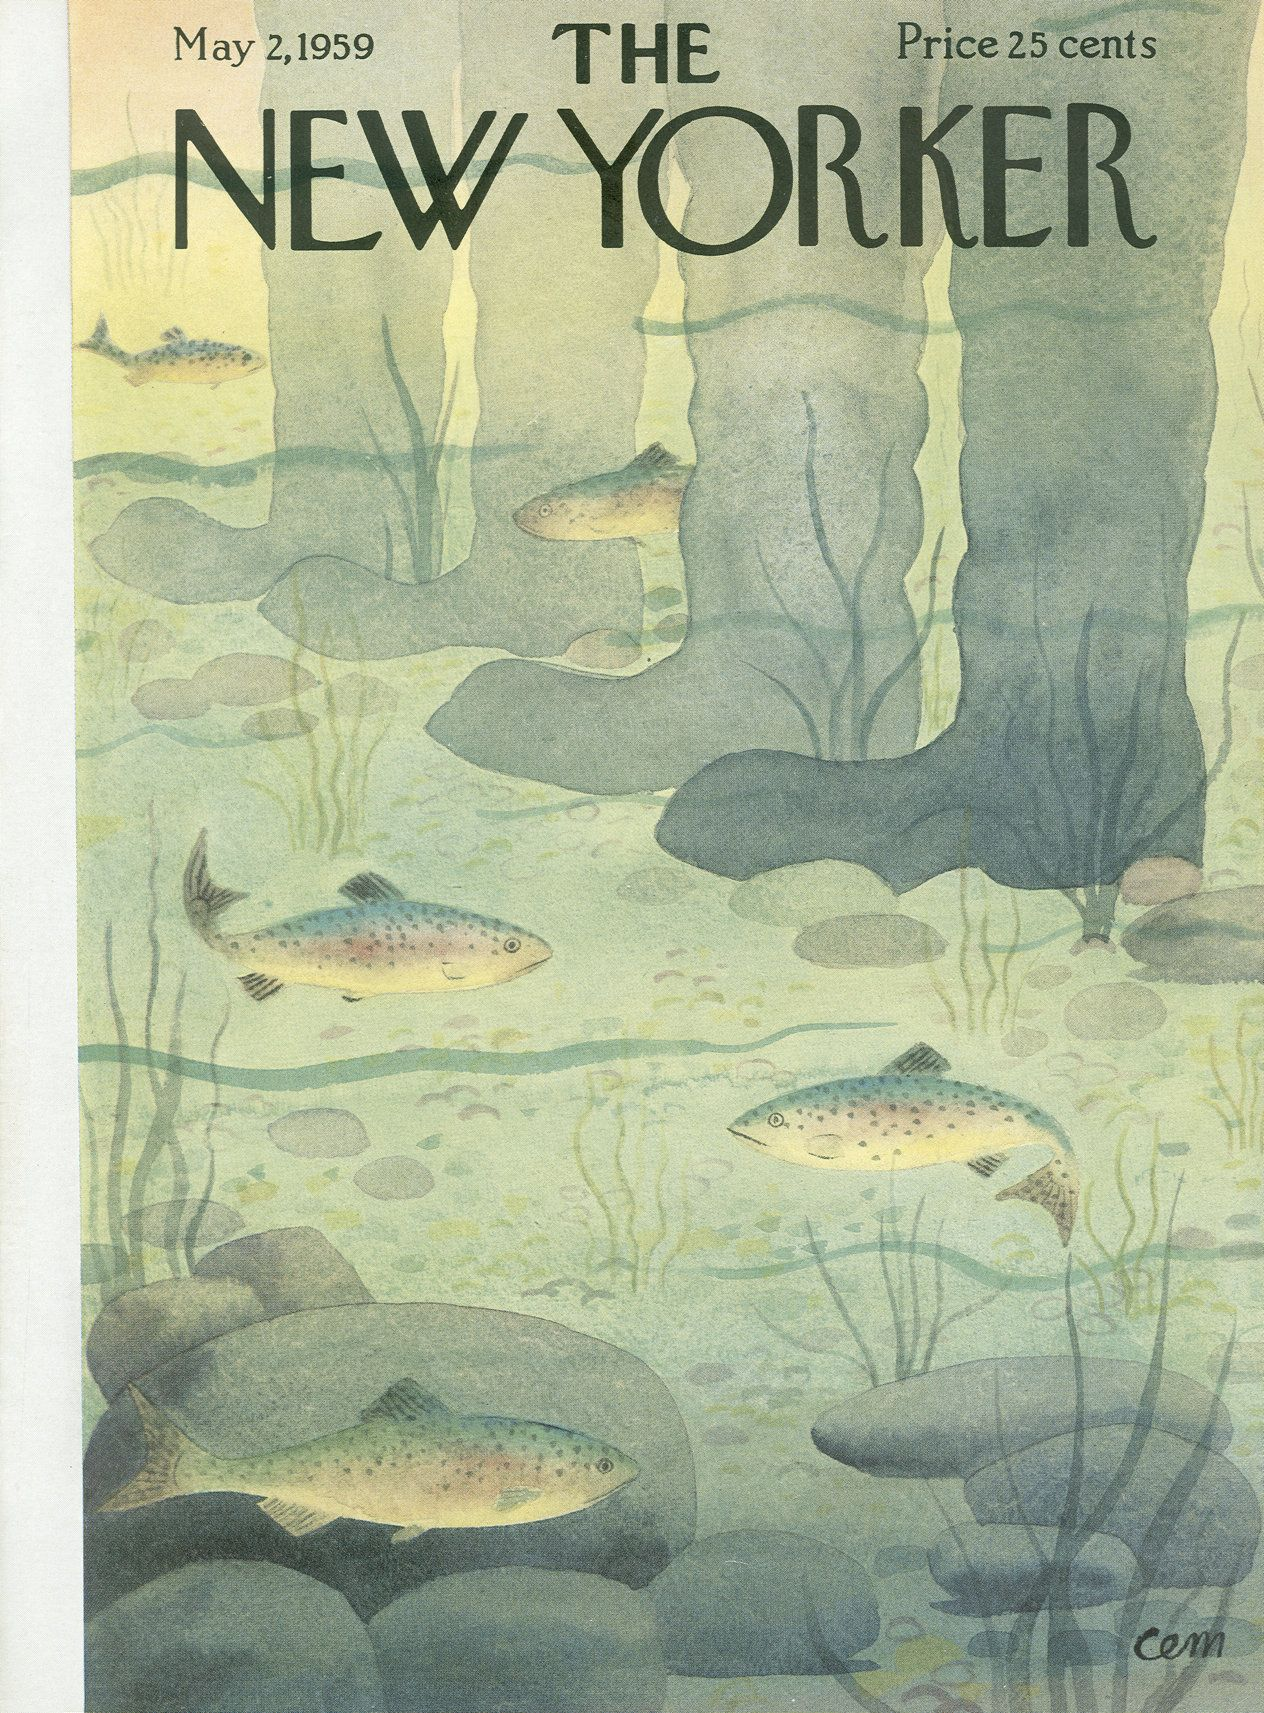 The New Yorker - Saturday, May 2, 1959 - Issue # 1785 - Vol. 35 - N° 11 - Cover by : Charles E. Martin